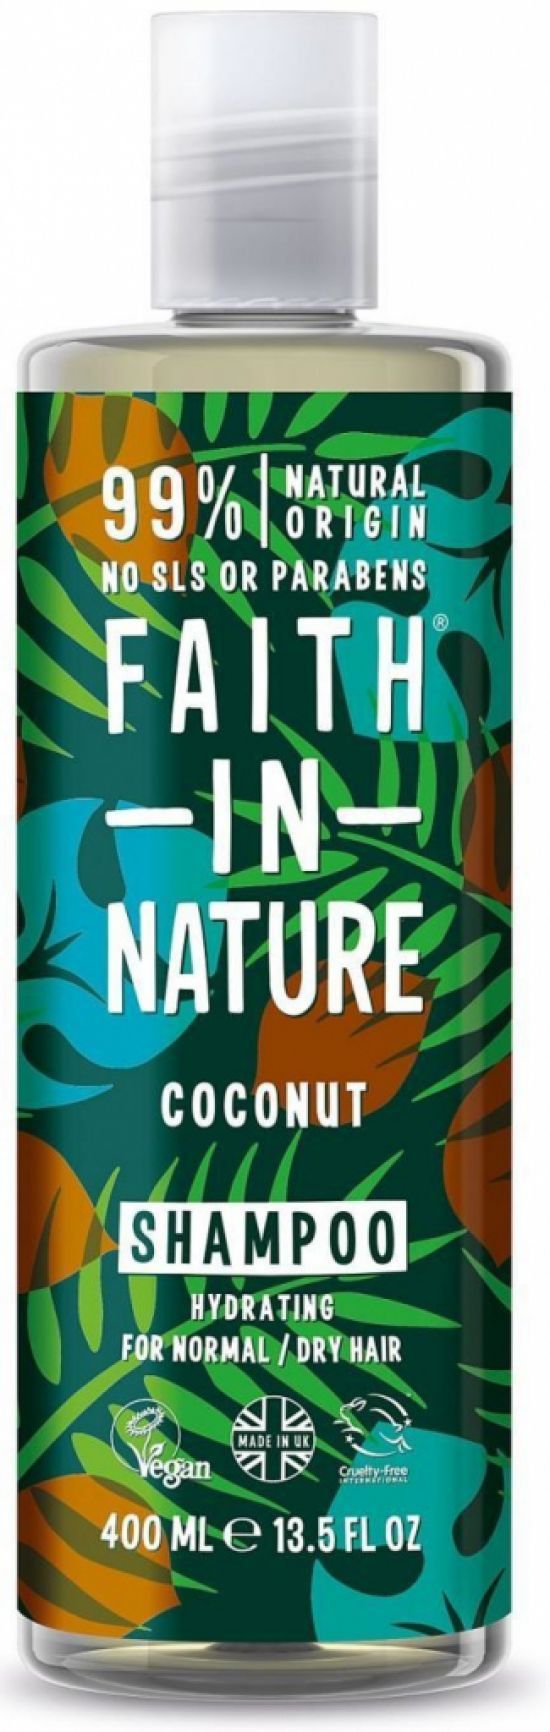 Fotografie Faith in Nature -  Coconut a Aloe Vera sampon a kondicioner